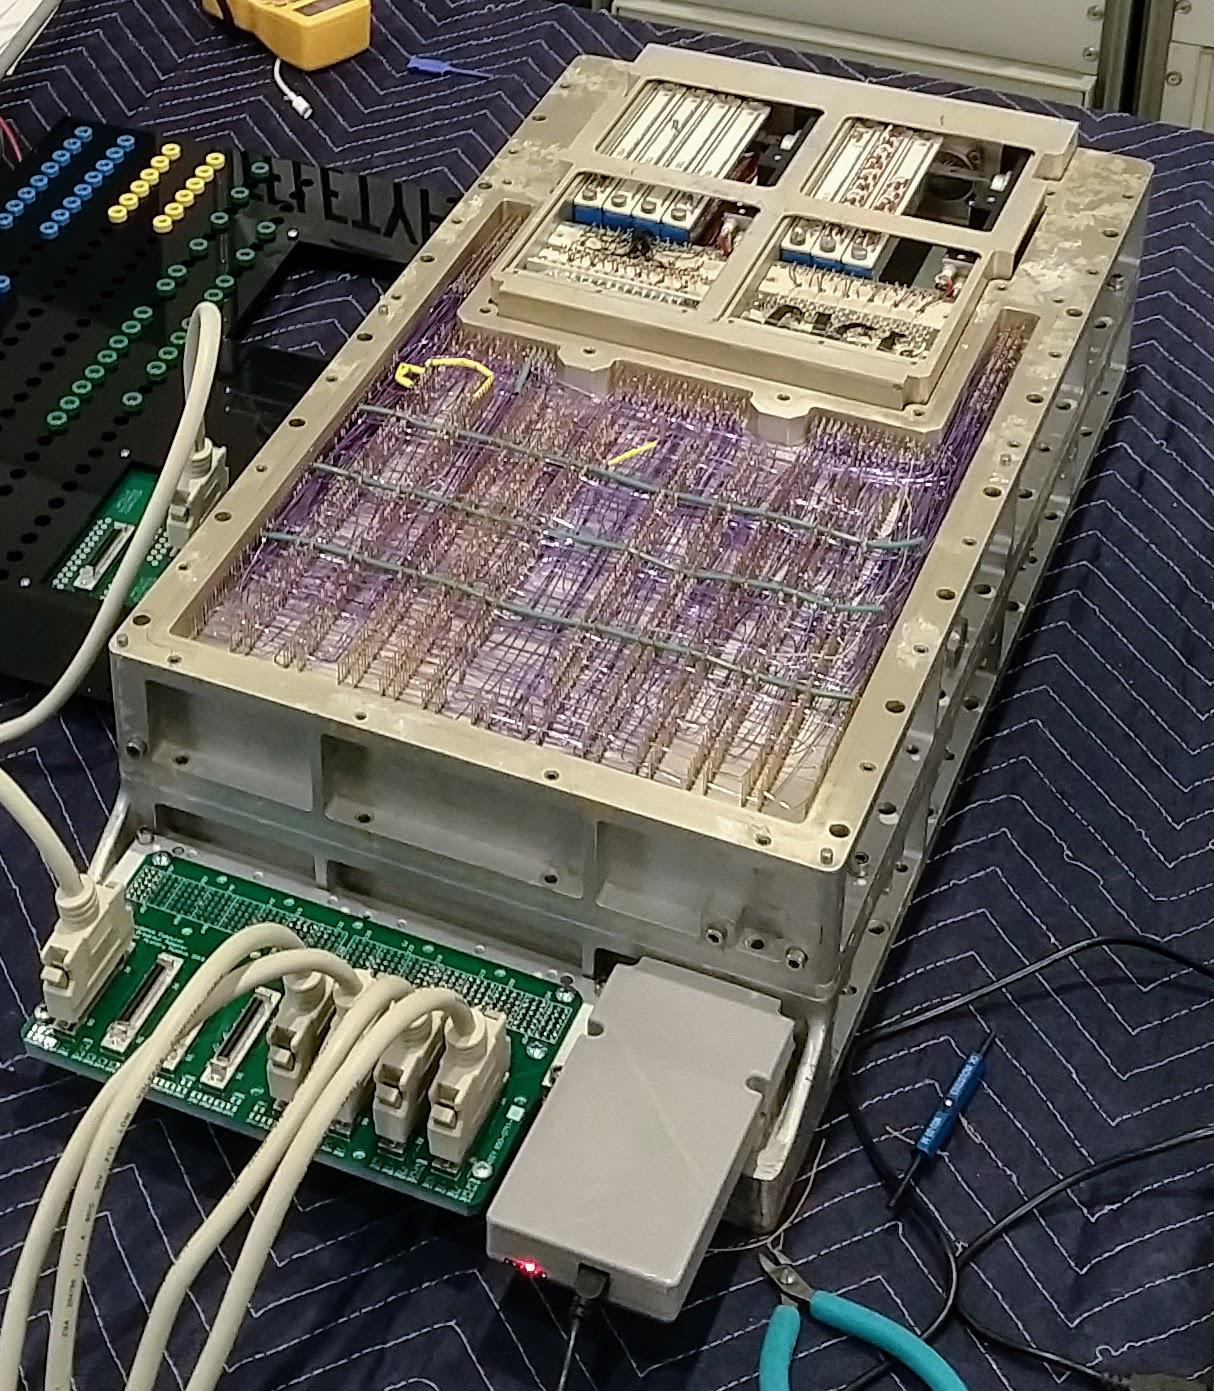 Bitcoin mining on an Apollo Guidance Computer: 10.3 seconds ... on